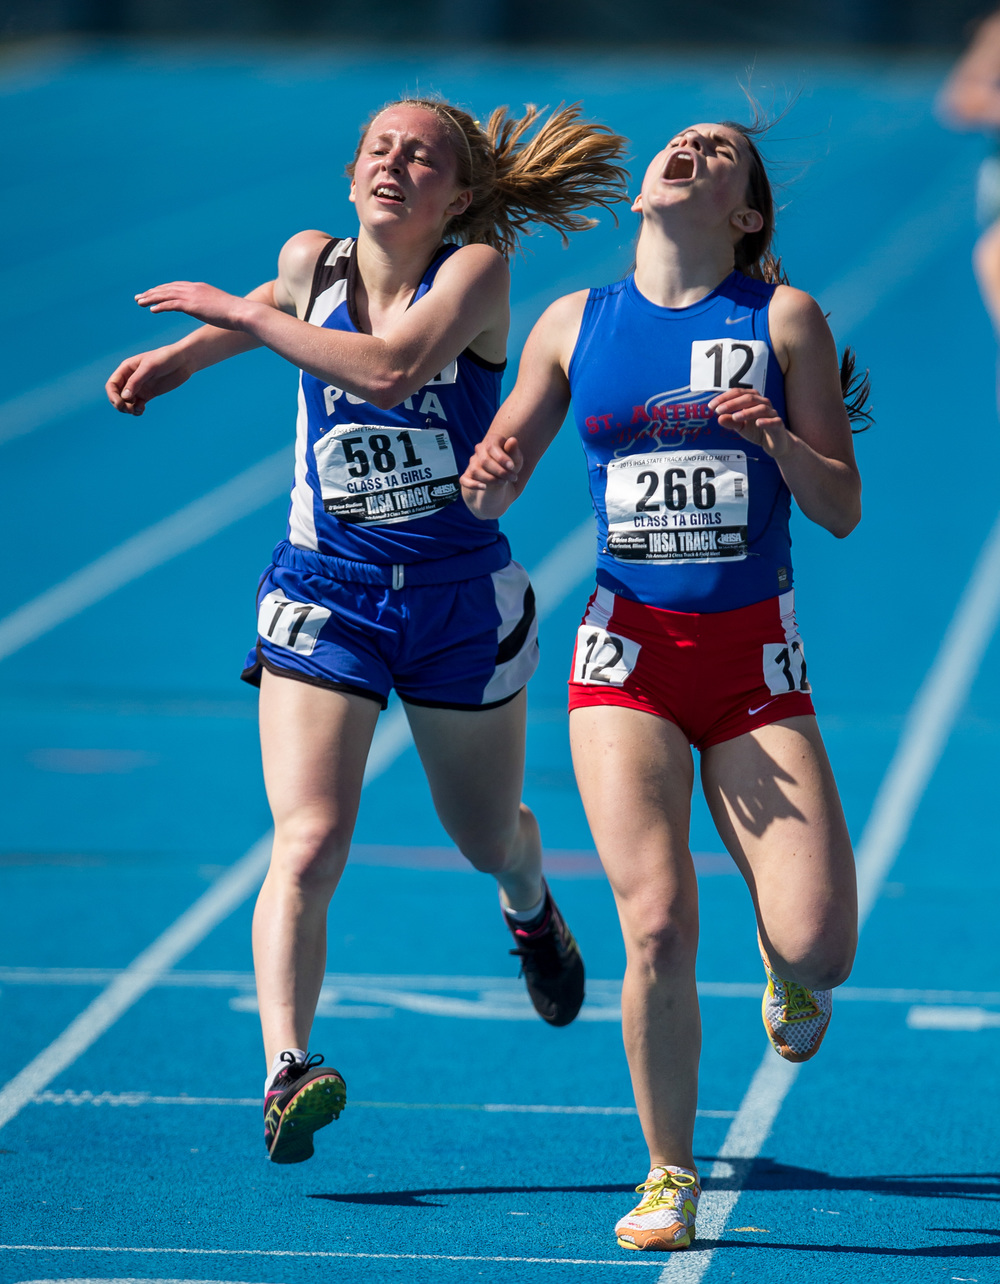 St. Anthony's Anna Sophia Keller narrowly defeats PORTA's Maria Brauer in the Class 1A 1600m Run during the IHSA Girls Track and Field State Finals at O'Brien Stadium, Saturday, May 23, 2015, in Charleston, Ill. Justin L. Fowler/The State Journal-Register